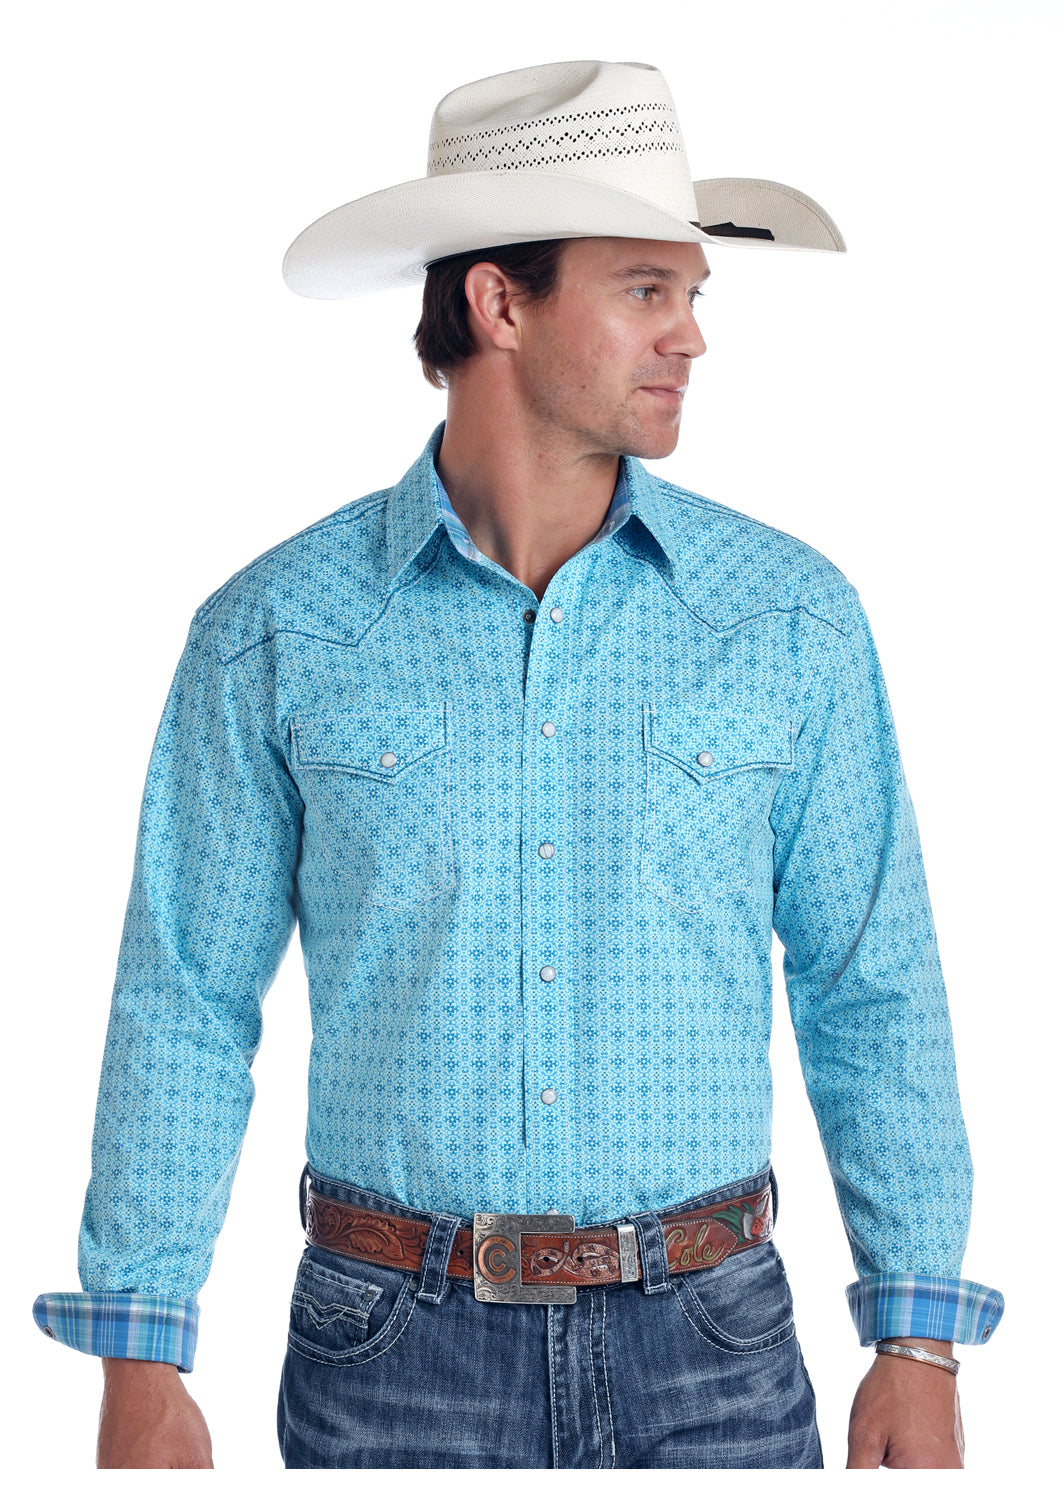 Panhandle Pearl Snap Long Sleeve Aqua Men's Button Down